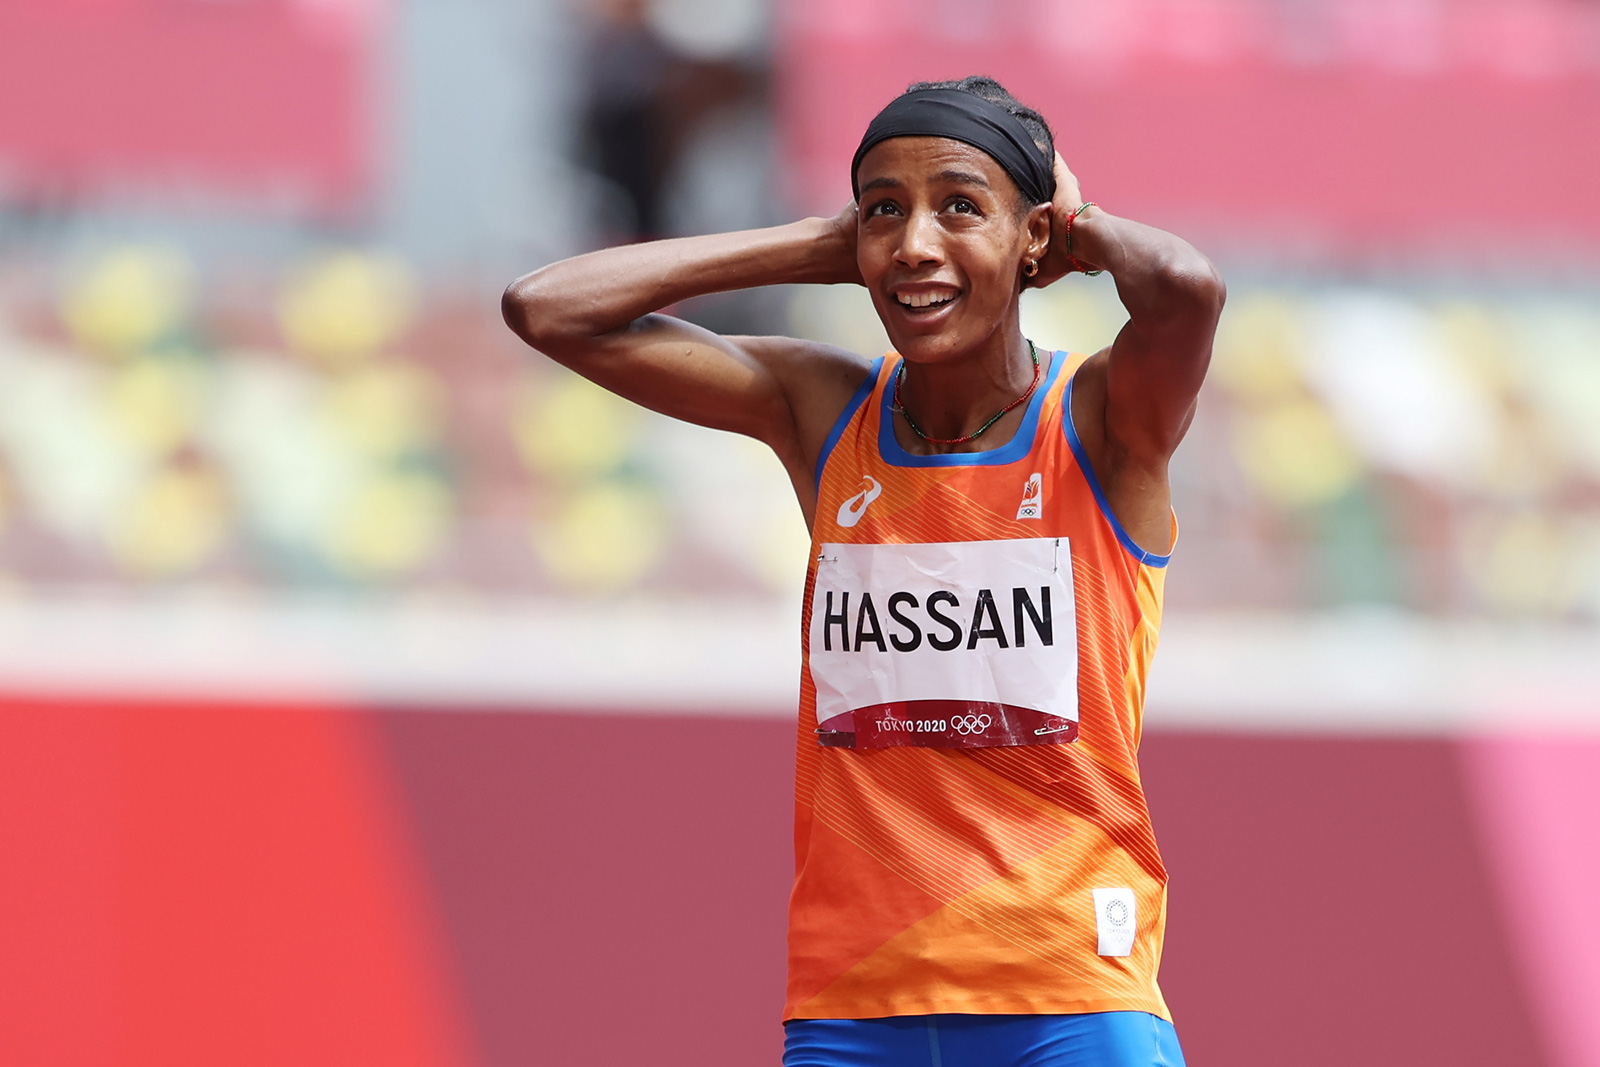 Sifan Hassan smiles after finishing a 1500 meter heat on Monday.